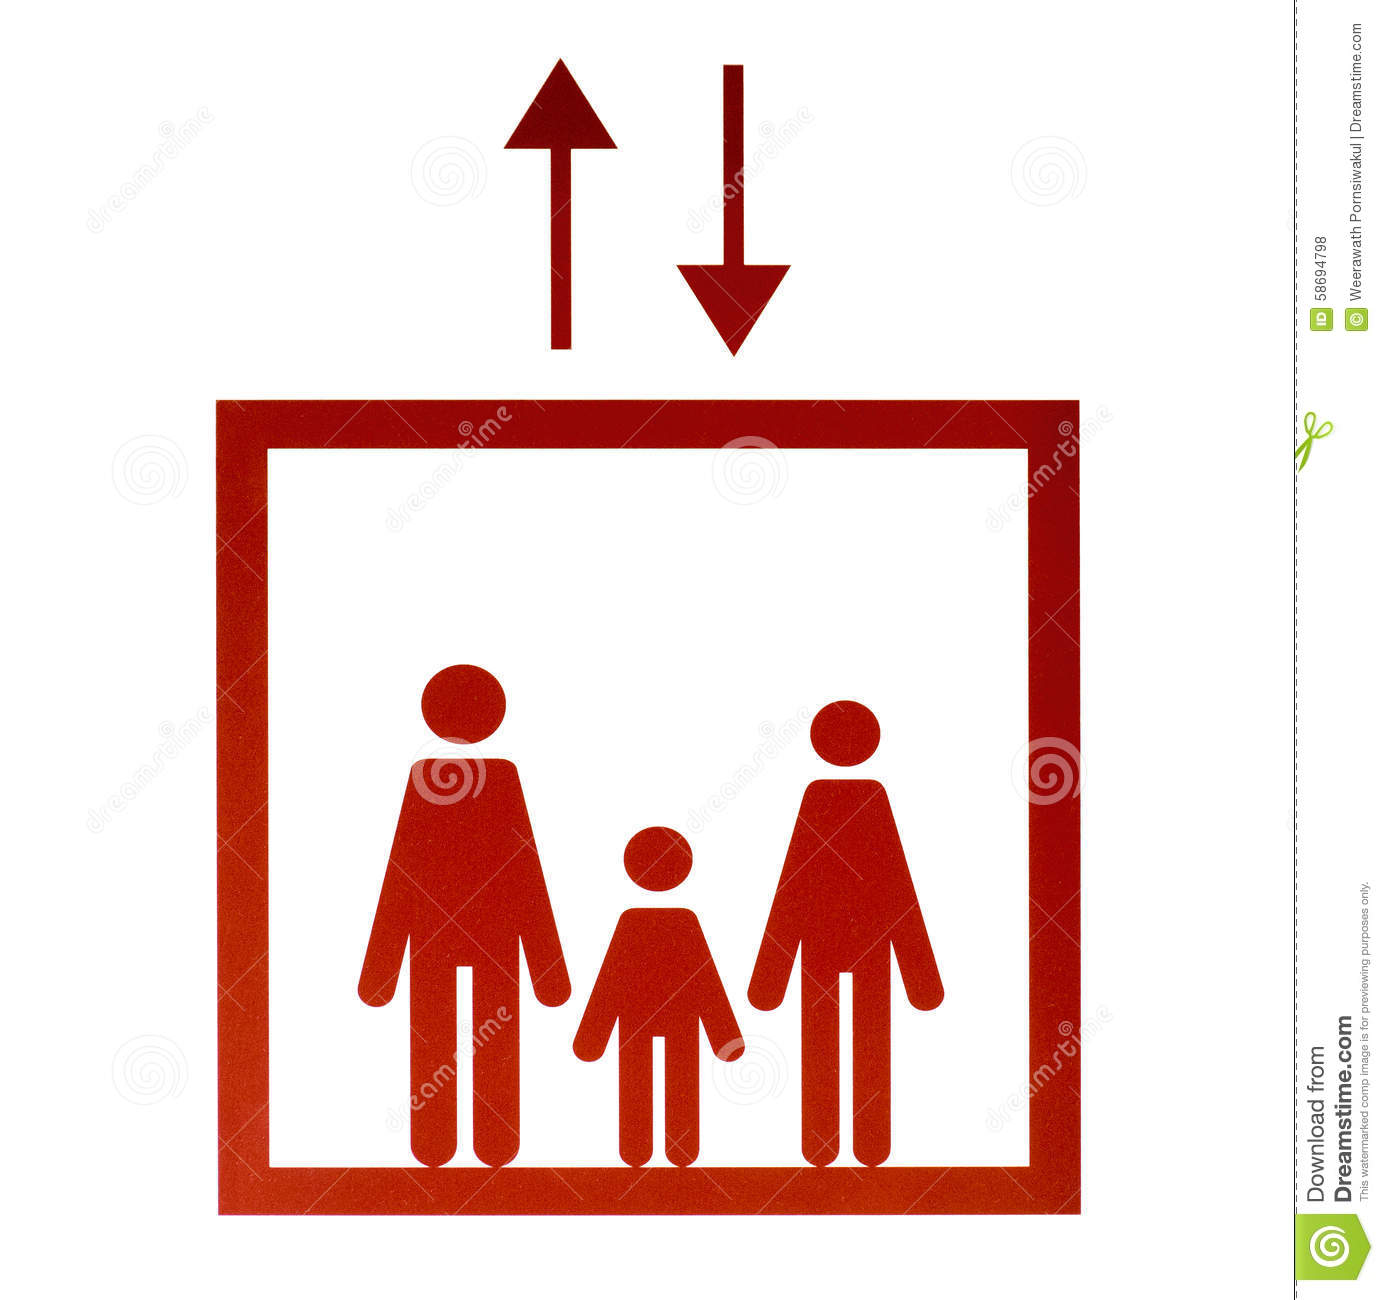 people in elevator clipart. royalty-free stock photo people in elevator clipart